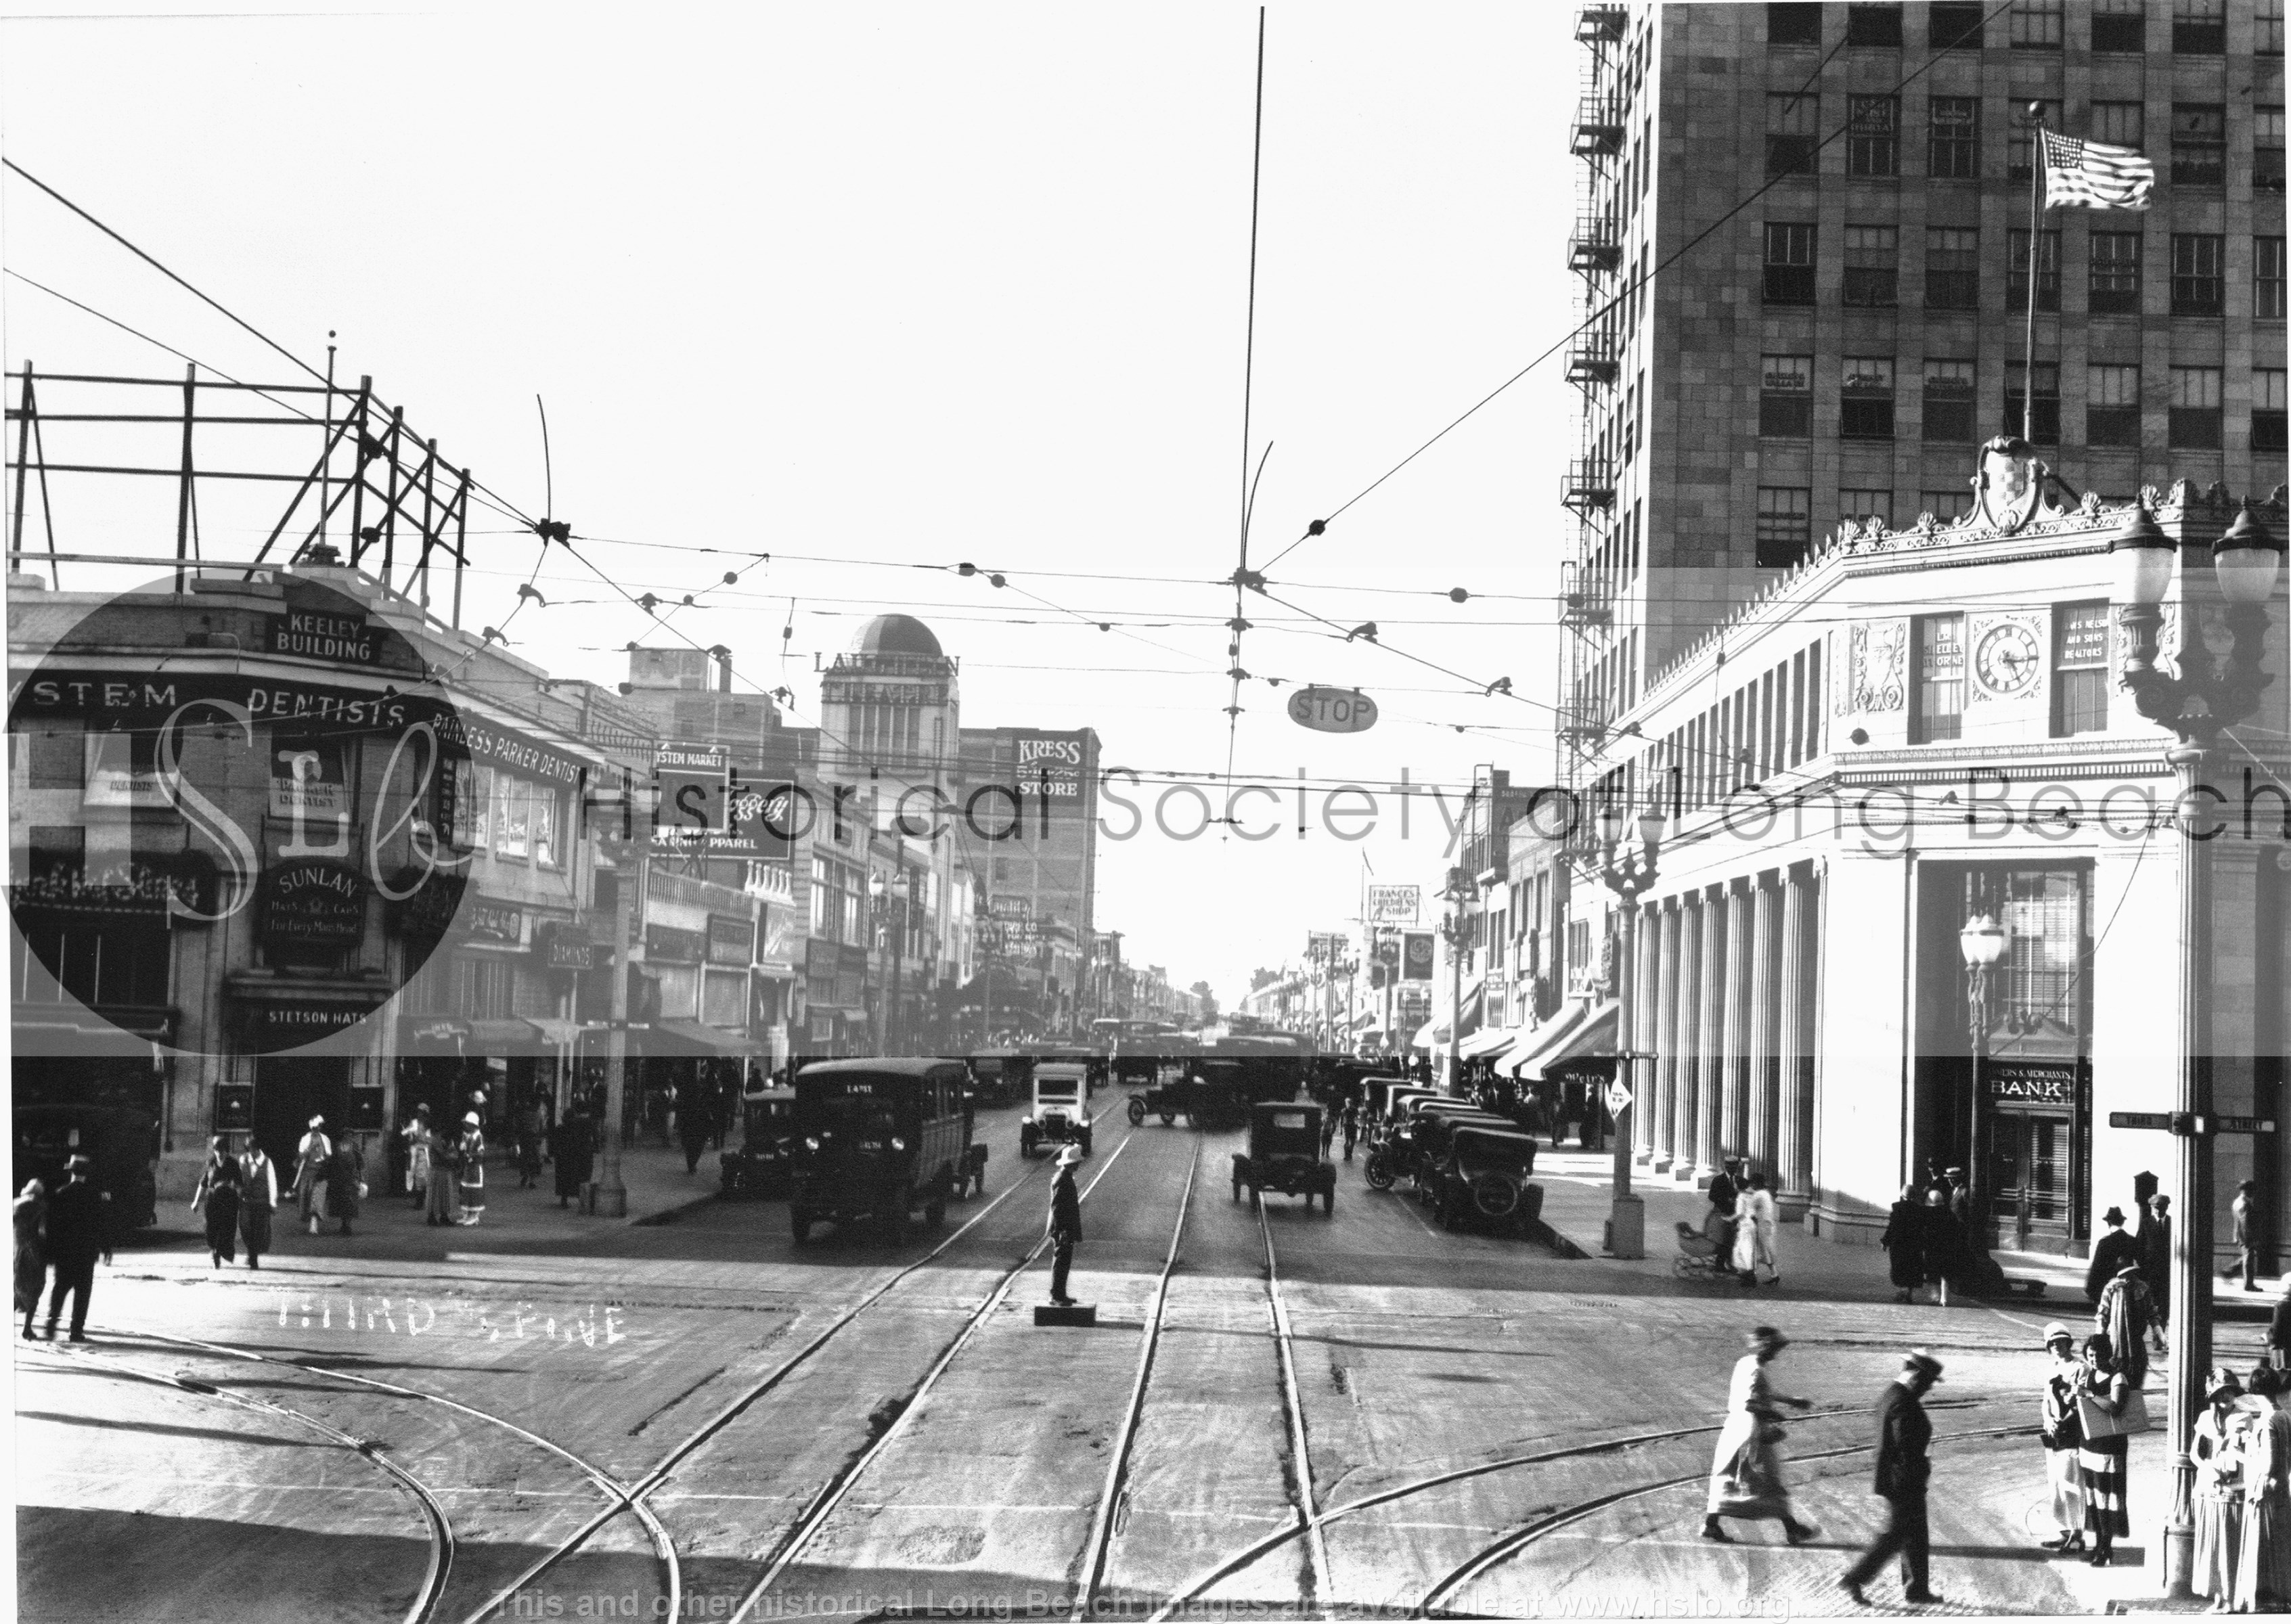 Pine Ave. & Third, 1925 vintage photo